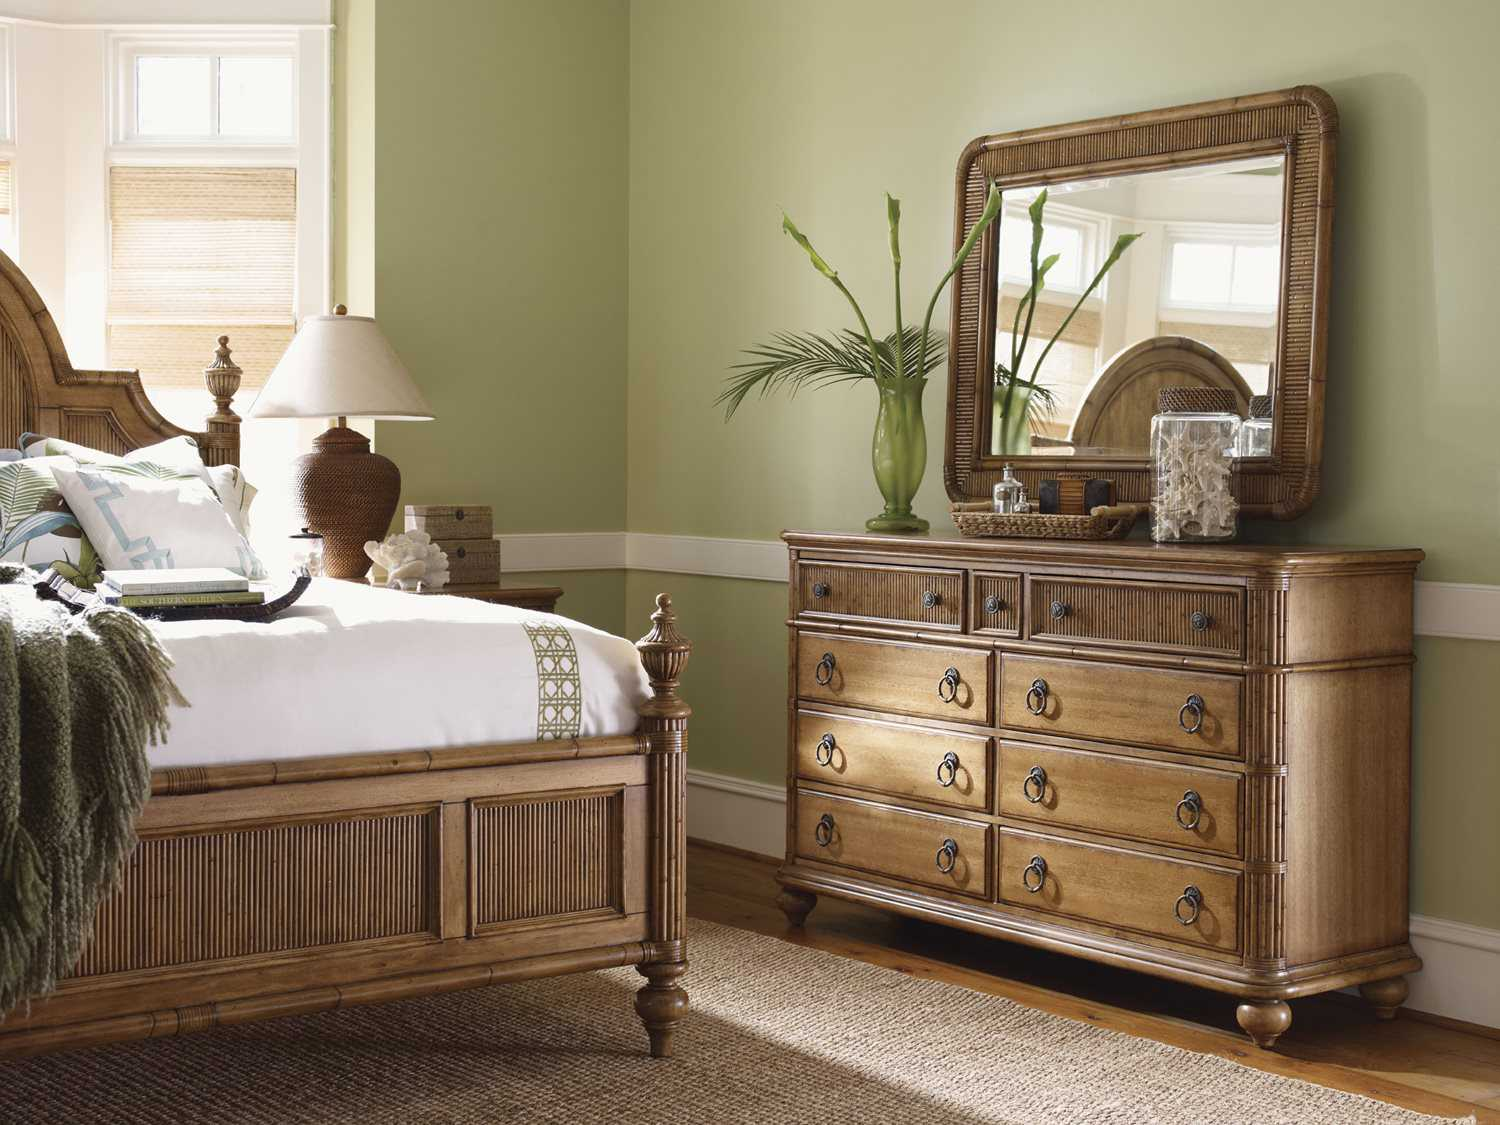 tommy bahama beach house belle isle bedroom set 01 0540 11146 | to010540134cset1 zm